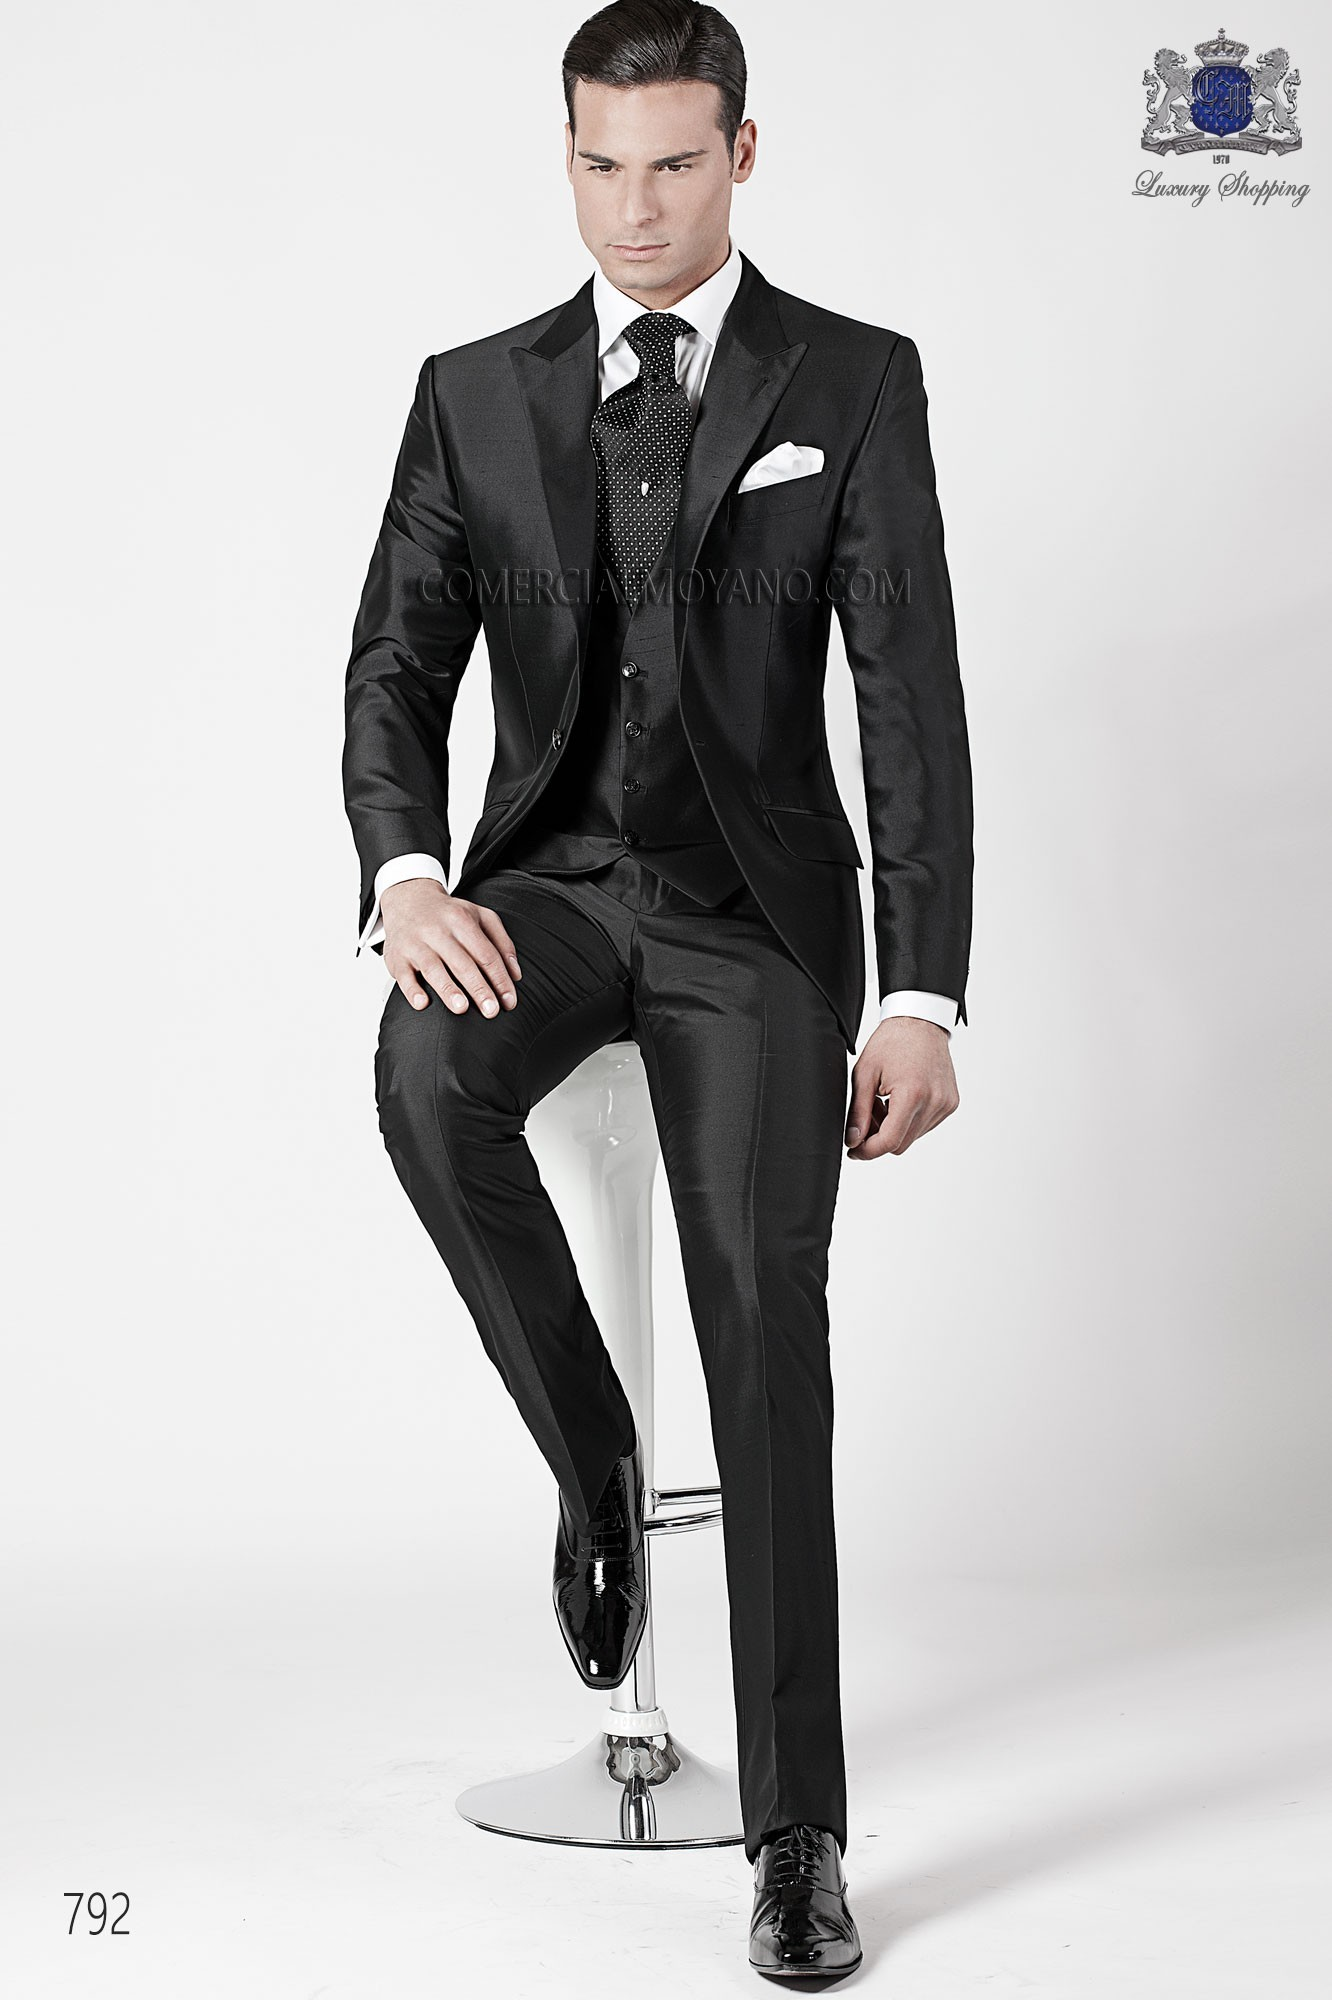 Fashion black men wedding suit model 792 Ottavio Nuccio Gala